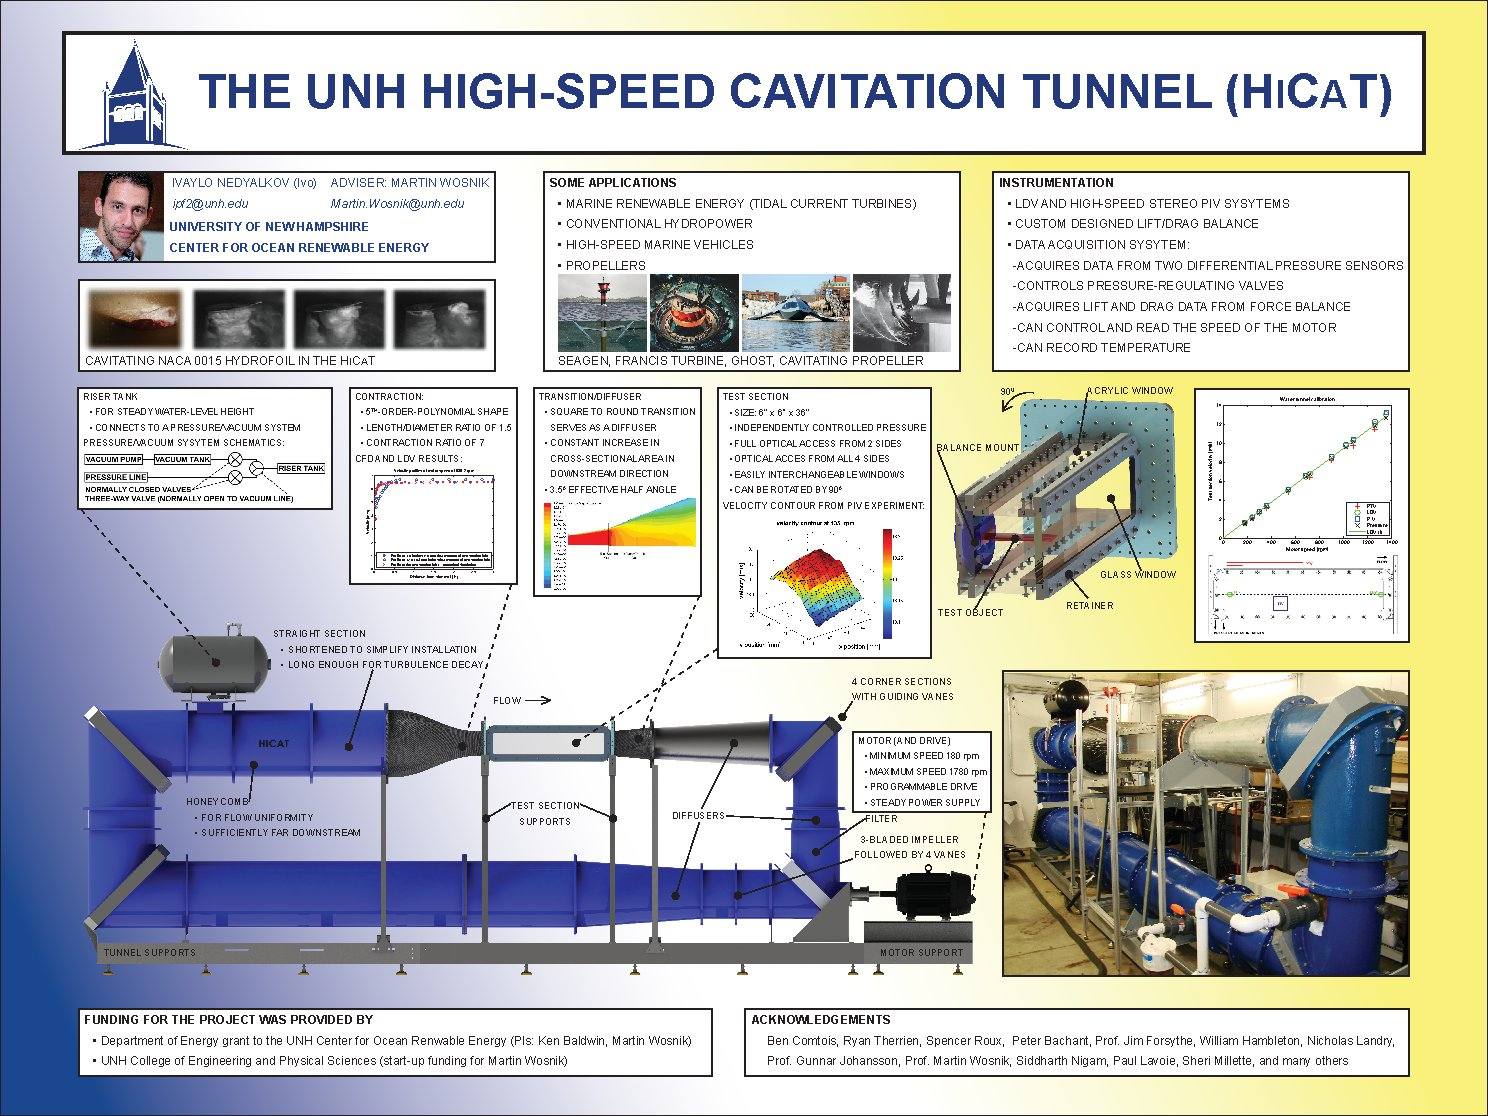 The Unh High-Speed Cavitation Tunnel (Hicat) - A New Look Into Water Flows by ivaylo